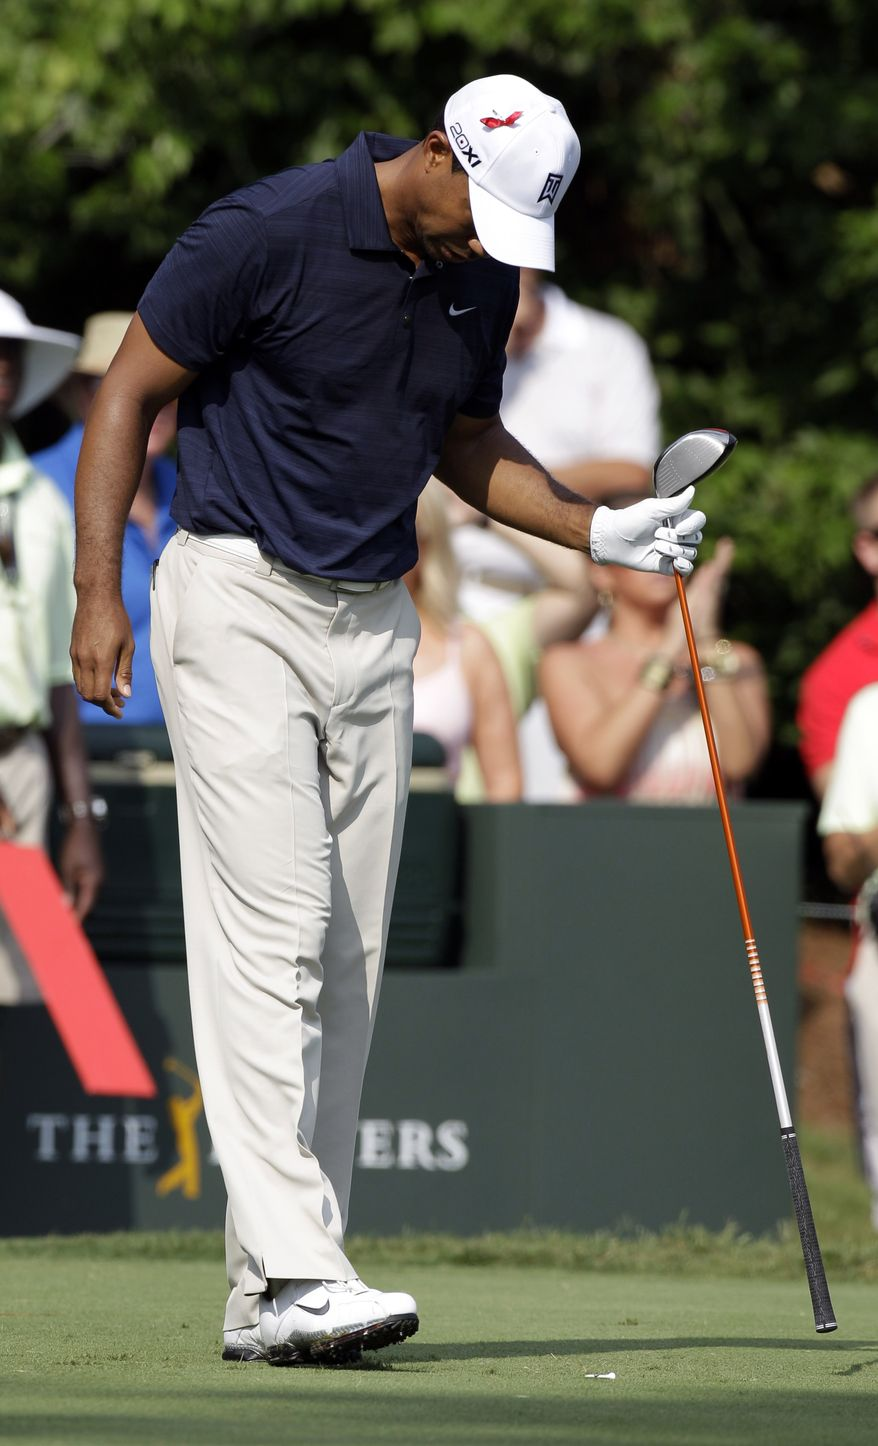 Tiger Woods withdrew from The Players Championship after nine holes back in May due to leg injuries and on Tuesday announced he'd also be skipping the U.S. Open. (AP Photo/Chris O'Meara)